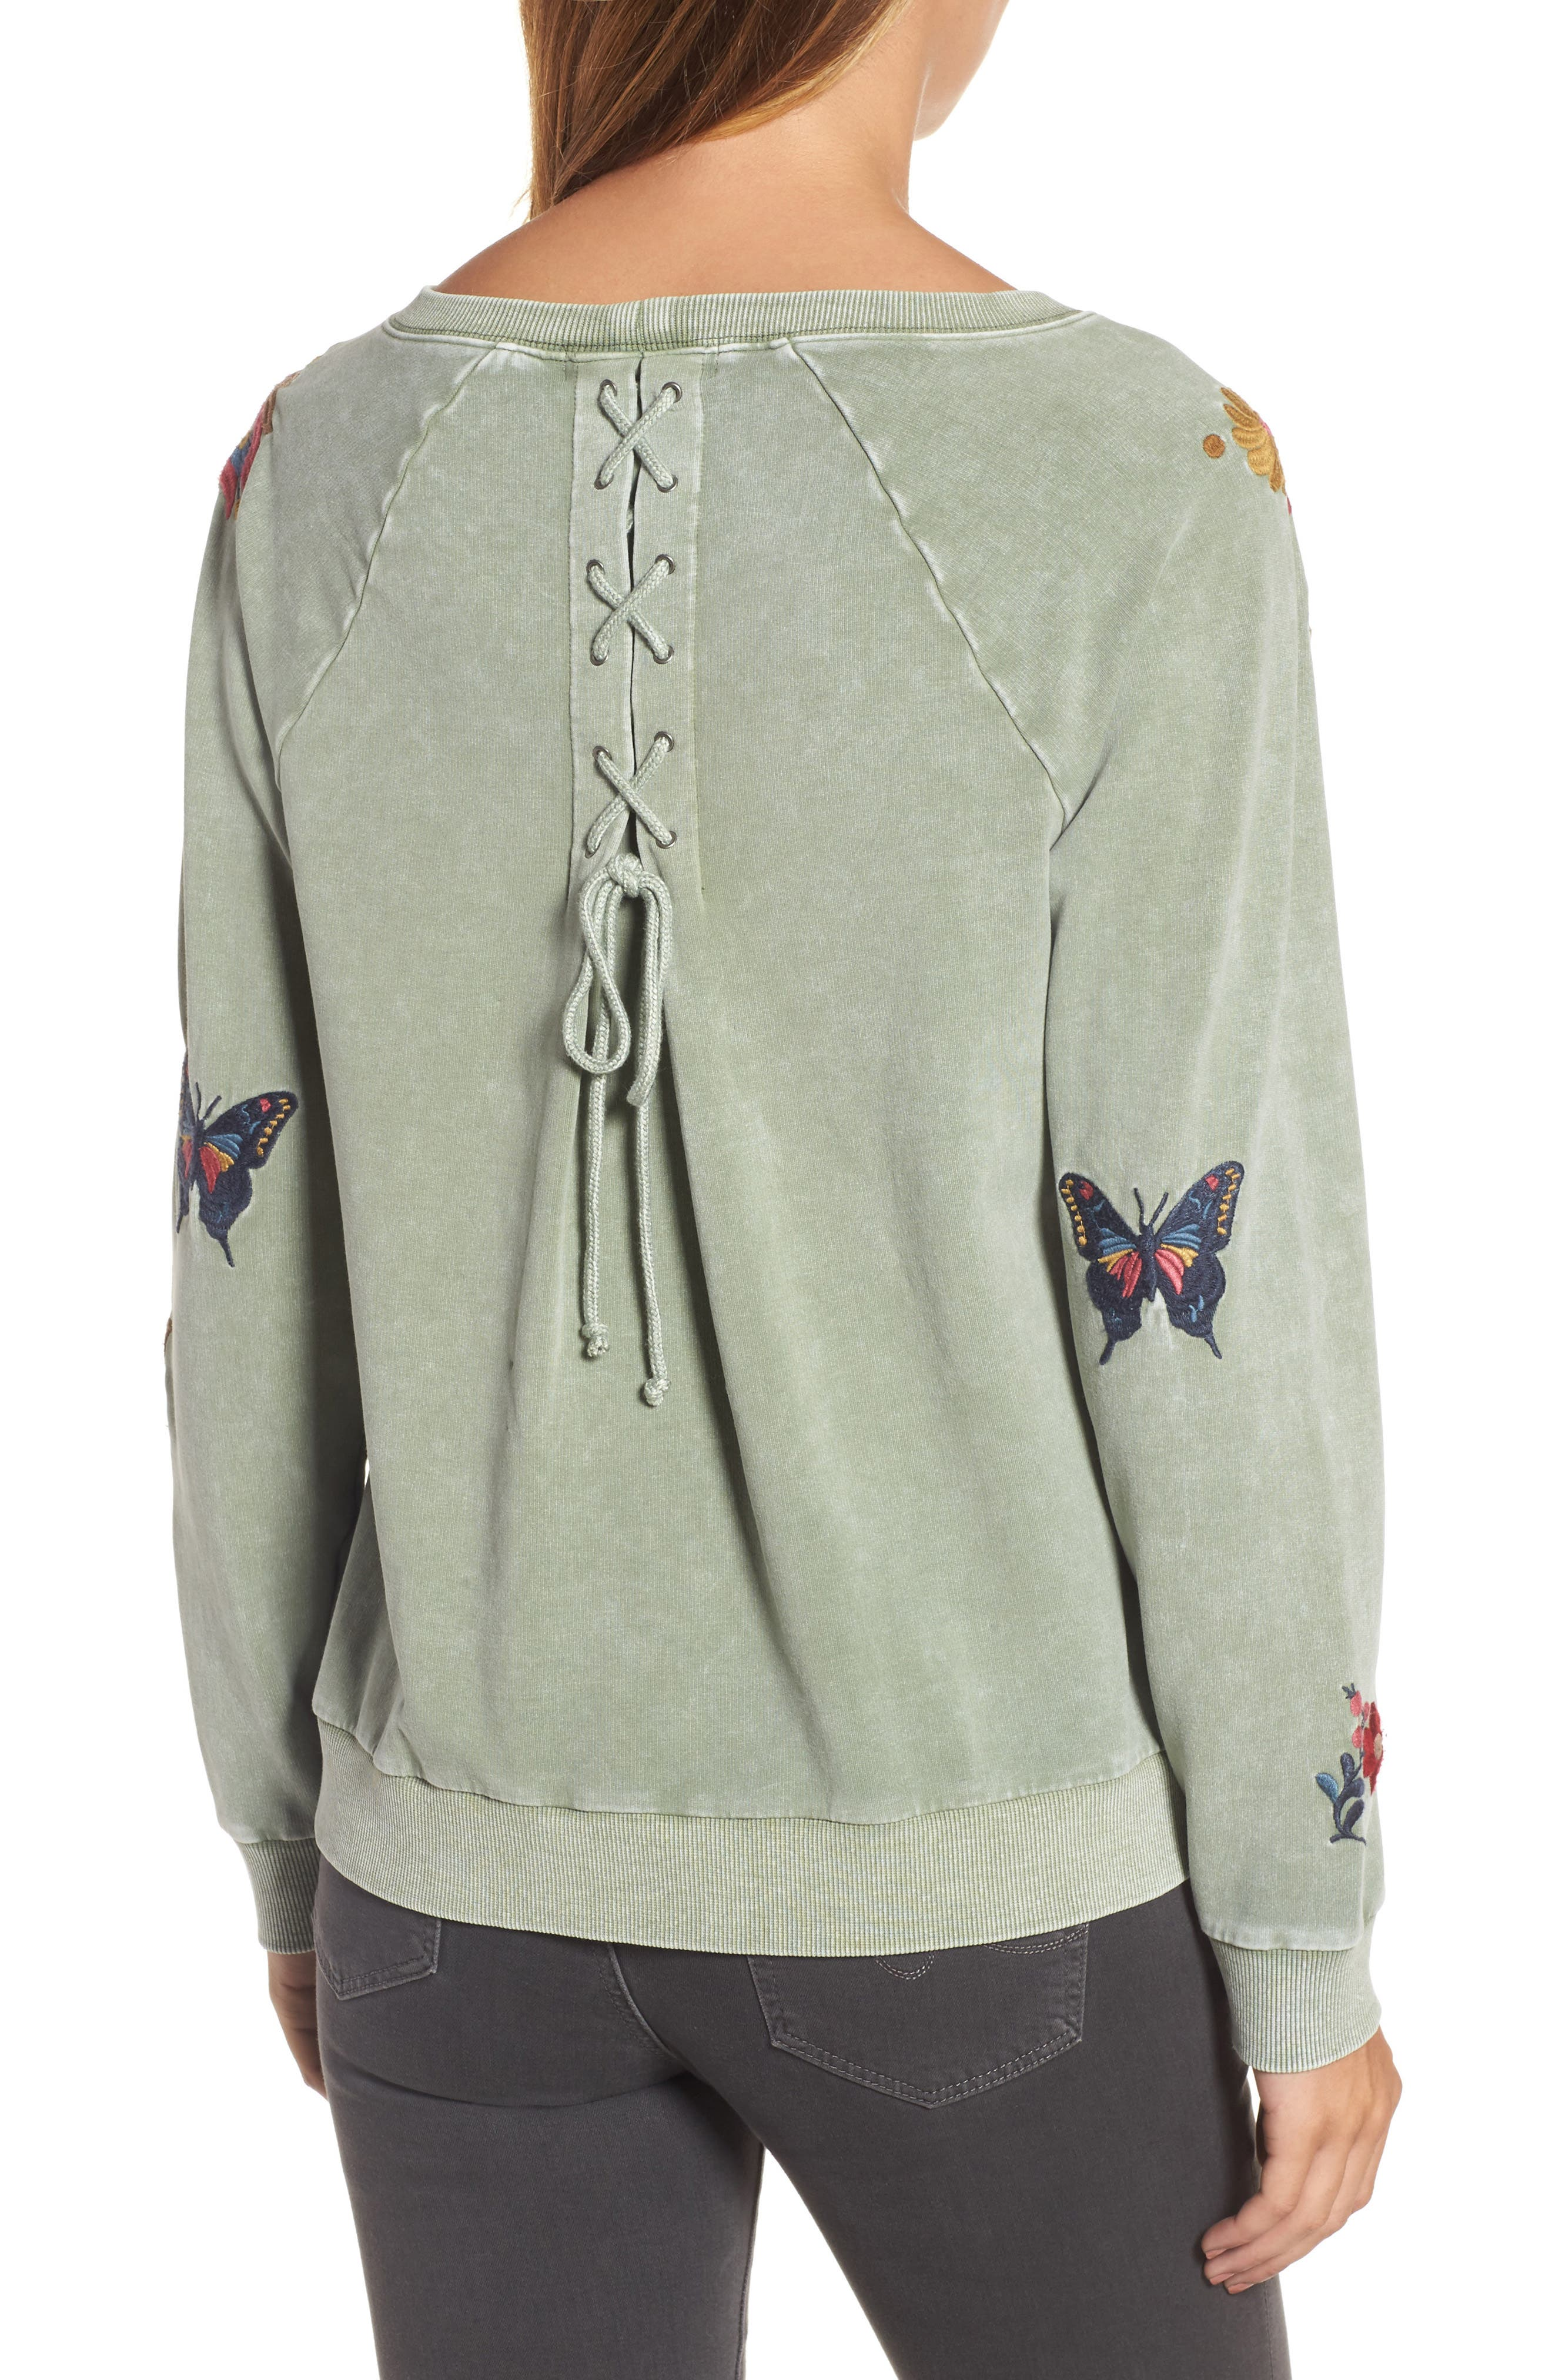 Embroidered Lace-Up Back Sweatshirt,                             Alternate thumbnail 2, color,                             Army